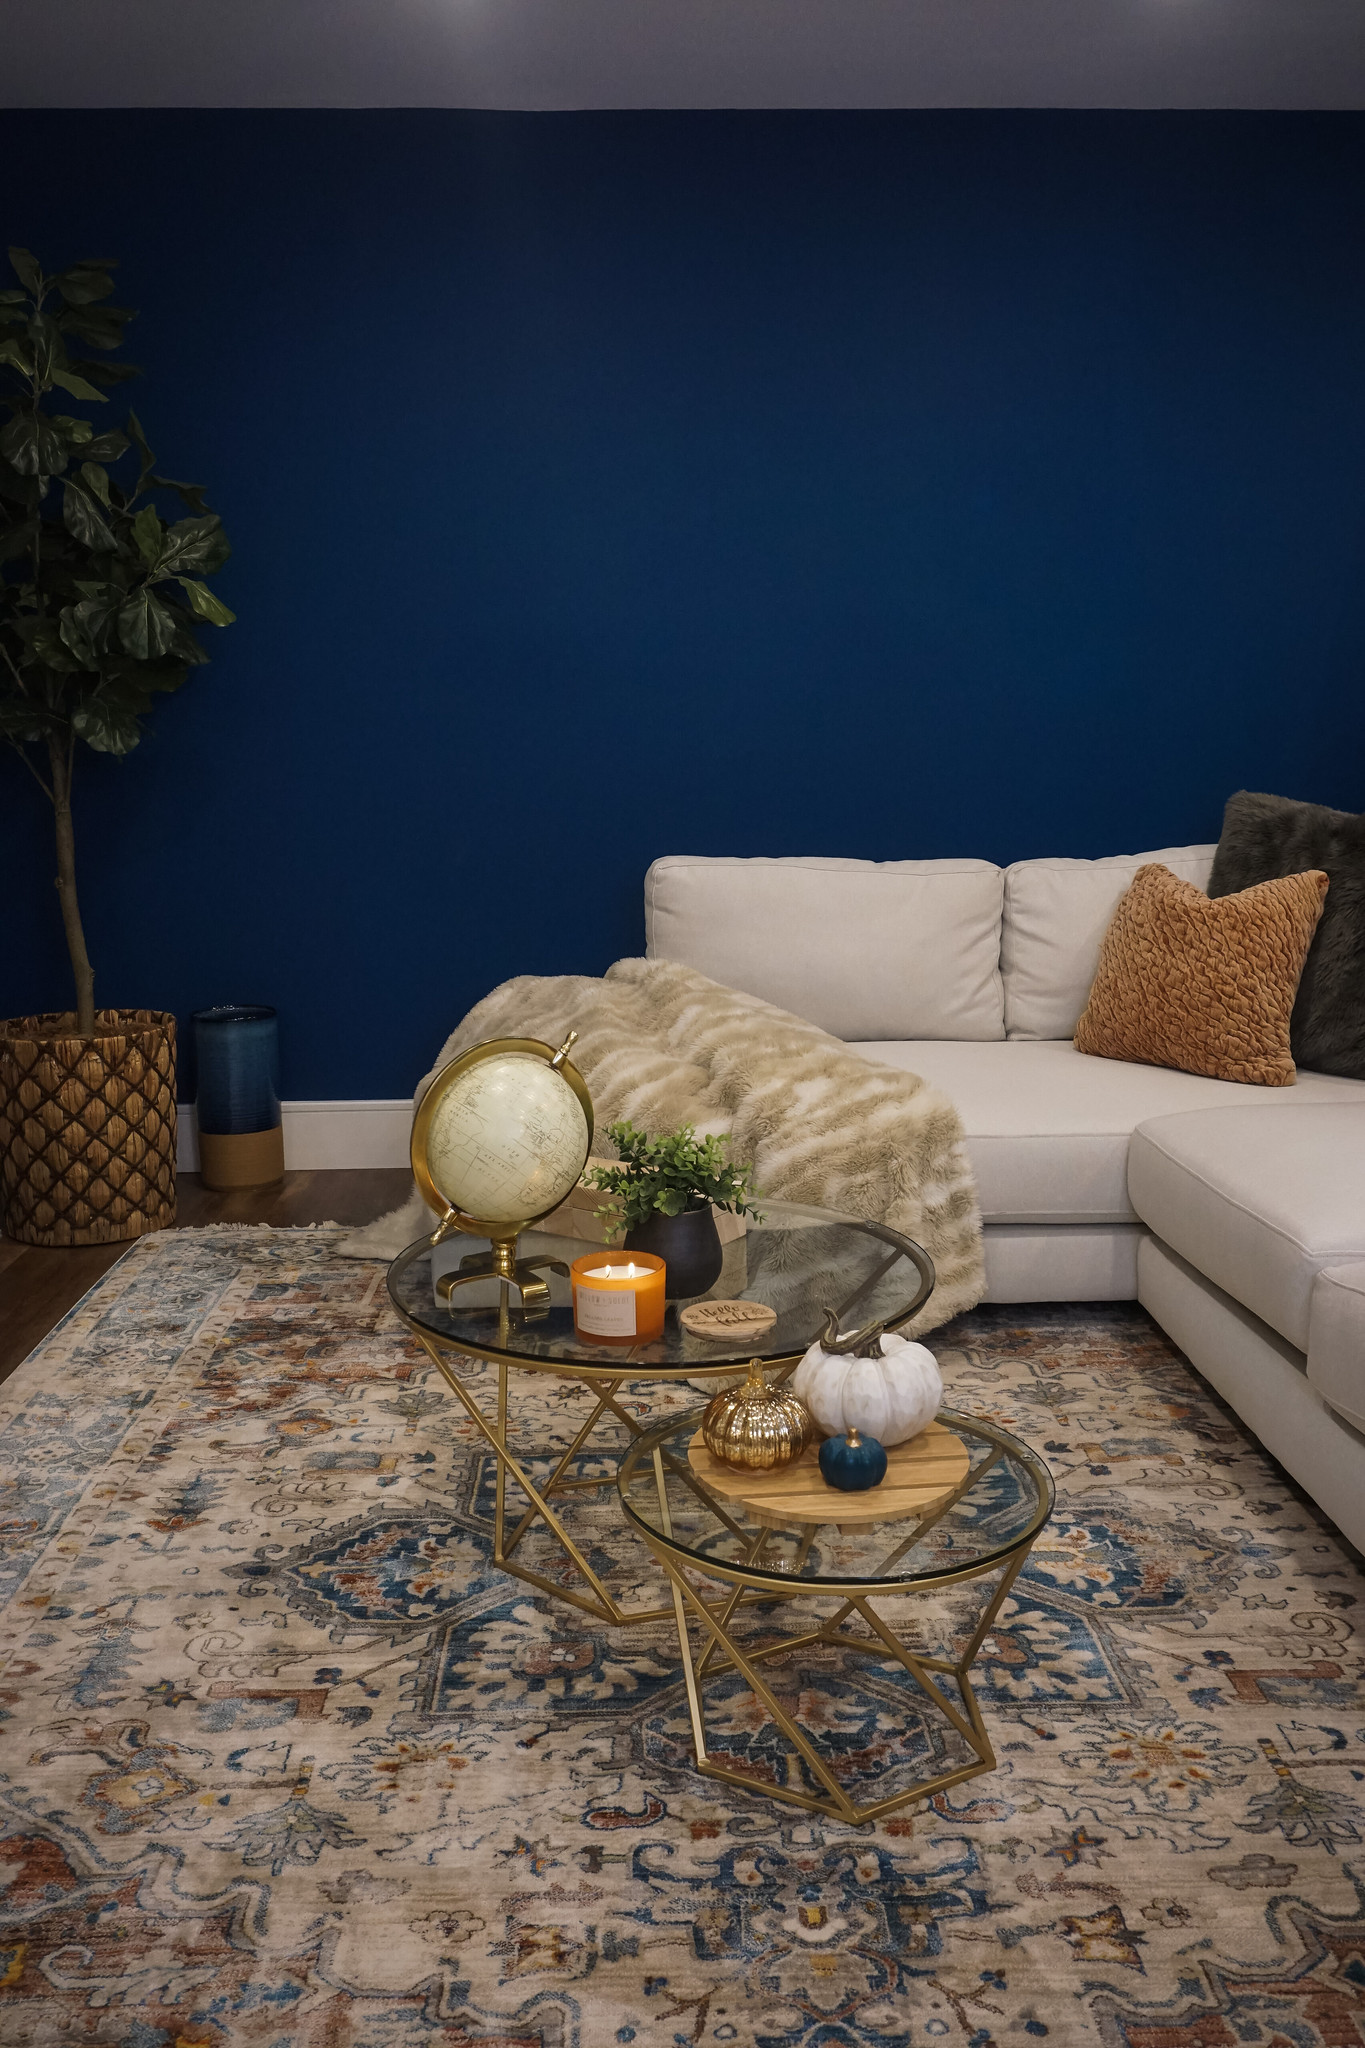 Living Room Fall Decor | Blue Walls | White Sectional Couch | Pumpkin Table Decor | Fall Candle on Coffee Table | How to Decorate Your Home for Fall